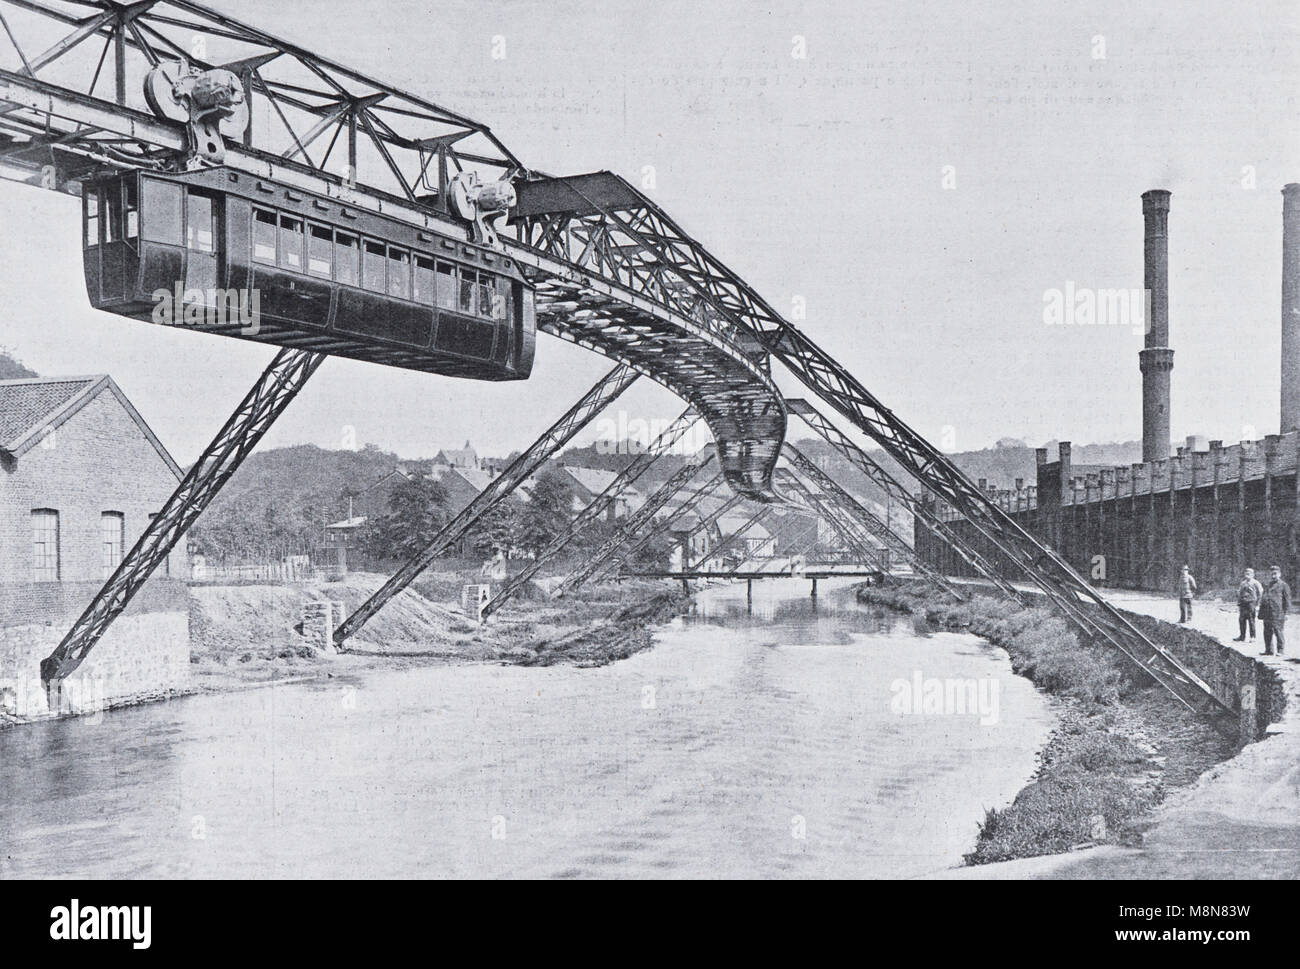 Wuppertal-Barmen-Elberfeld Suspension Railway, Ruhr region, Germany,  Picture from the French weekly newspaper l'Illustration, - Stock Image